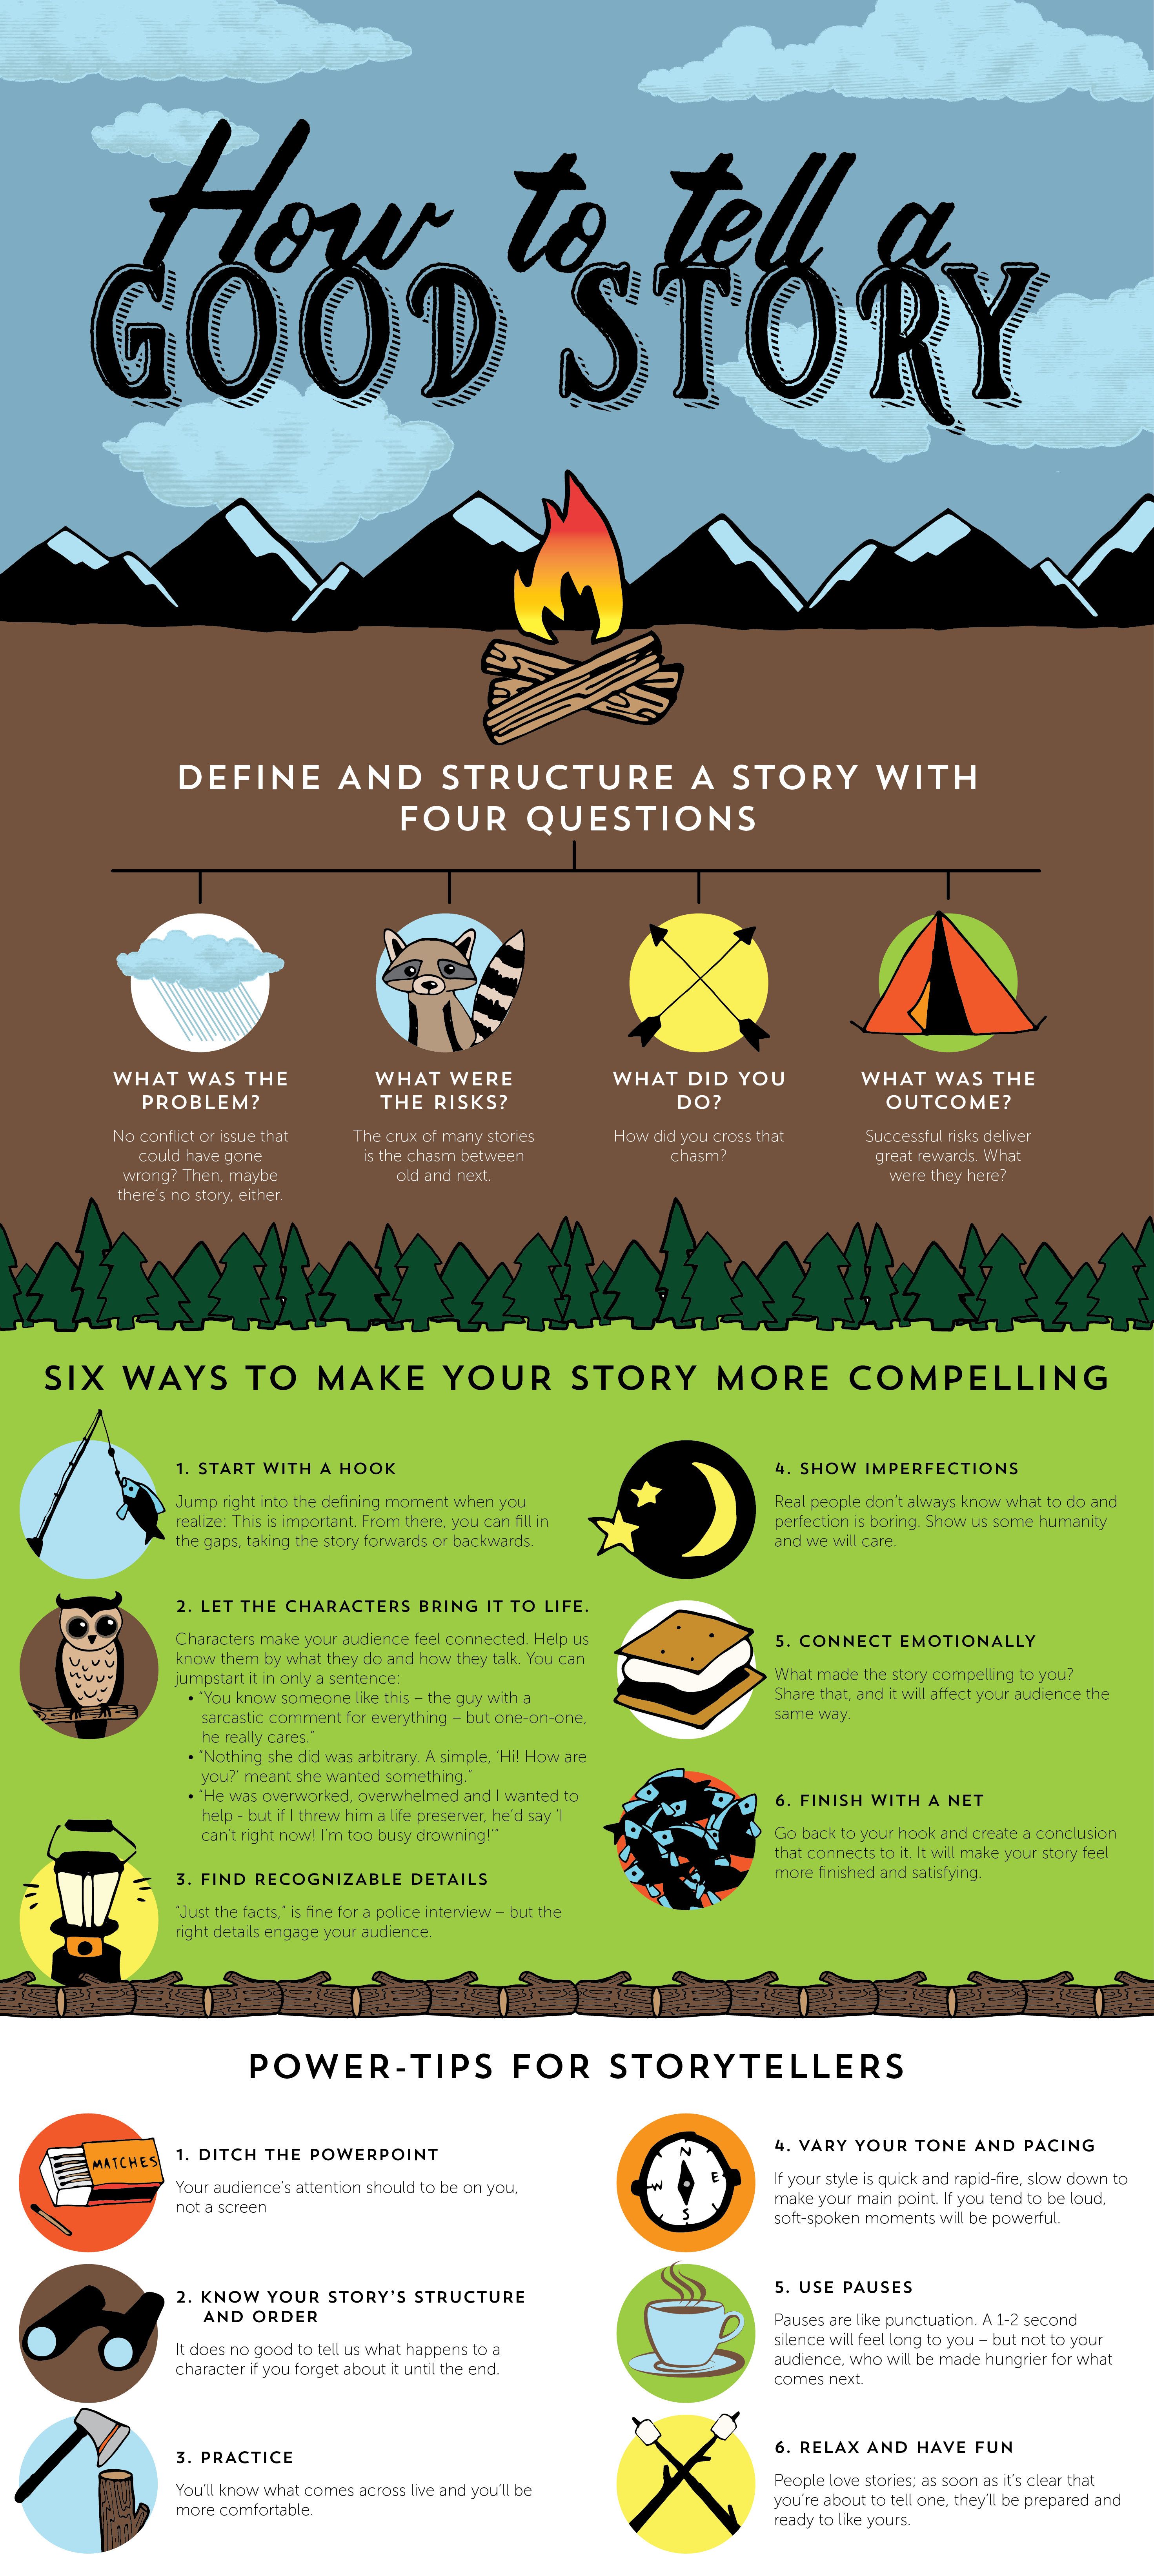 how to tell a good story   infographic   relish marketing